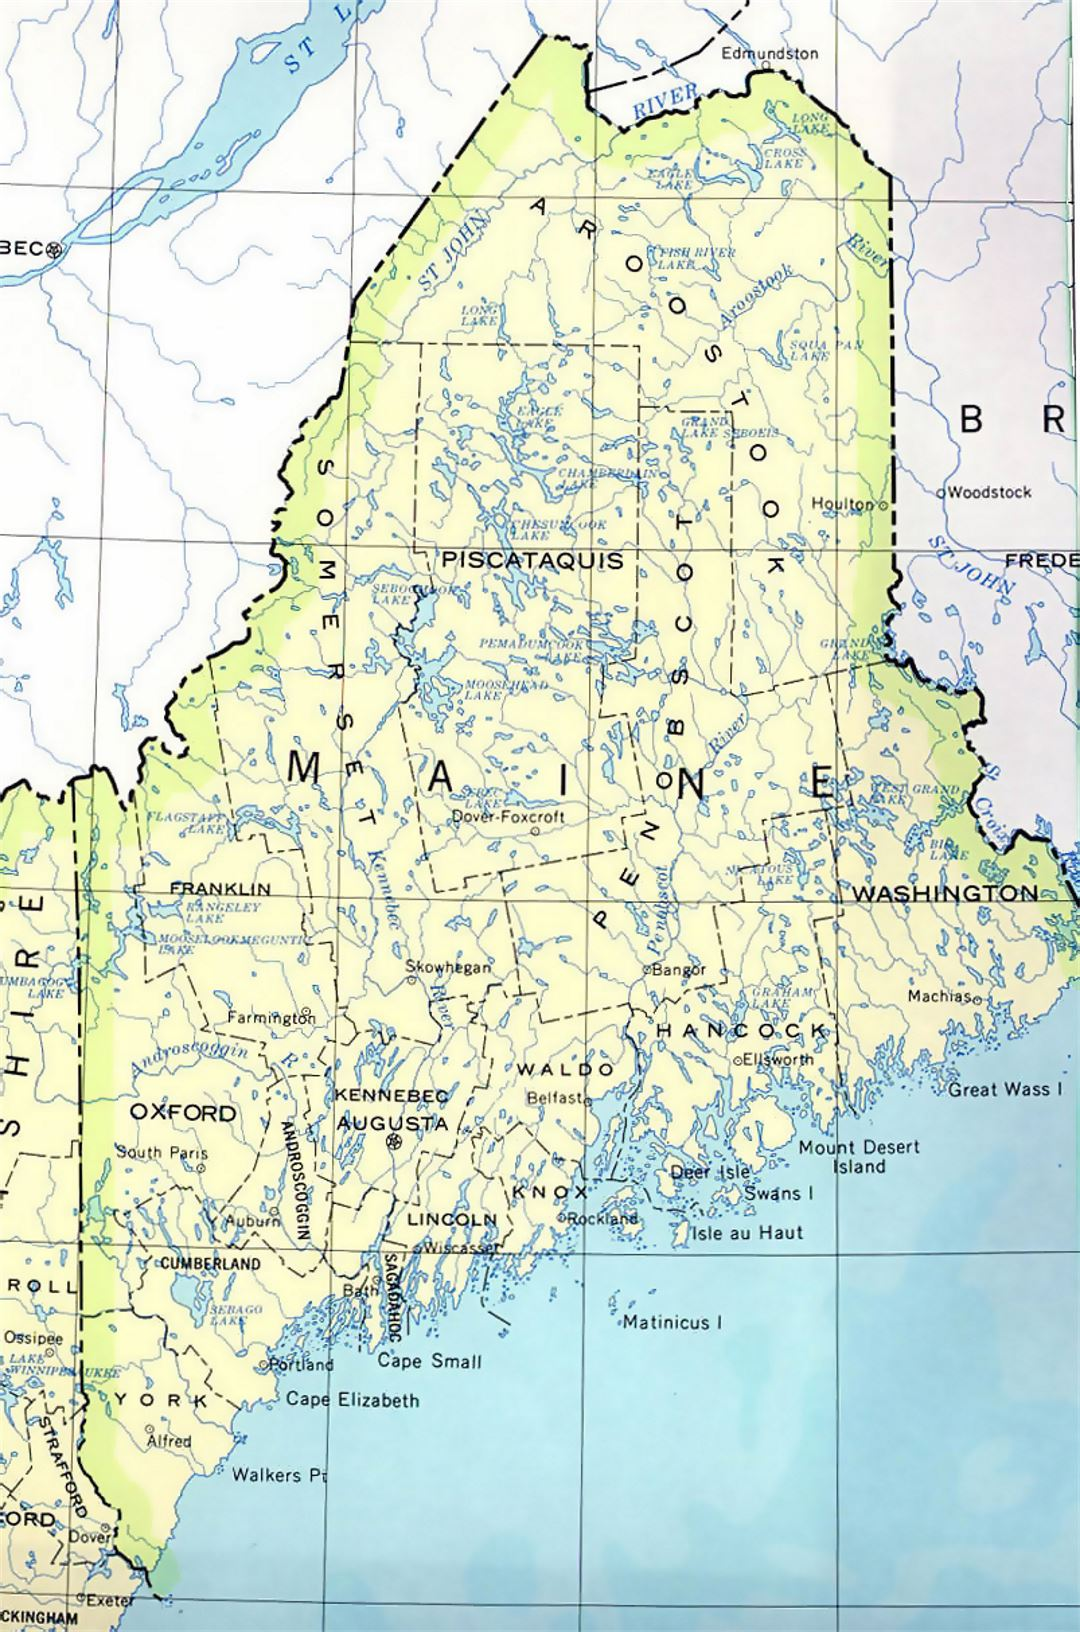 Administrative map of Maine state